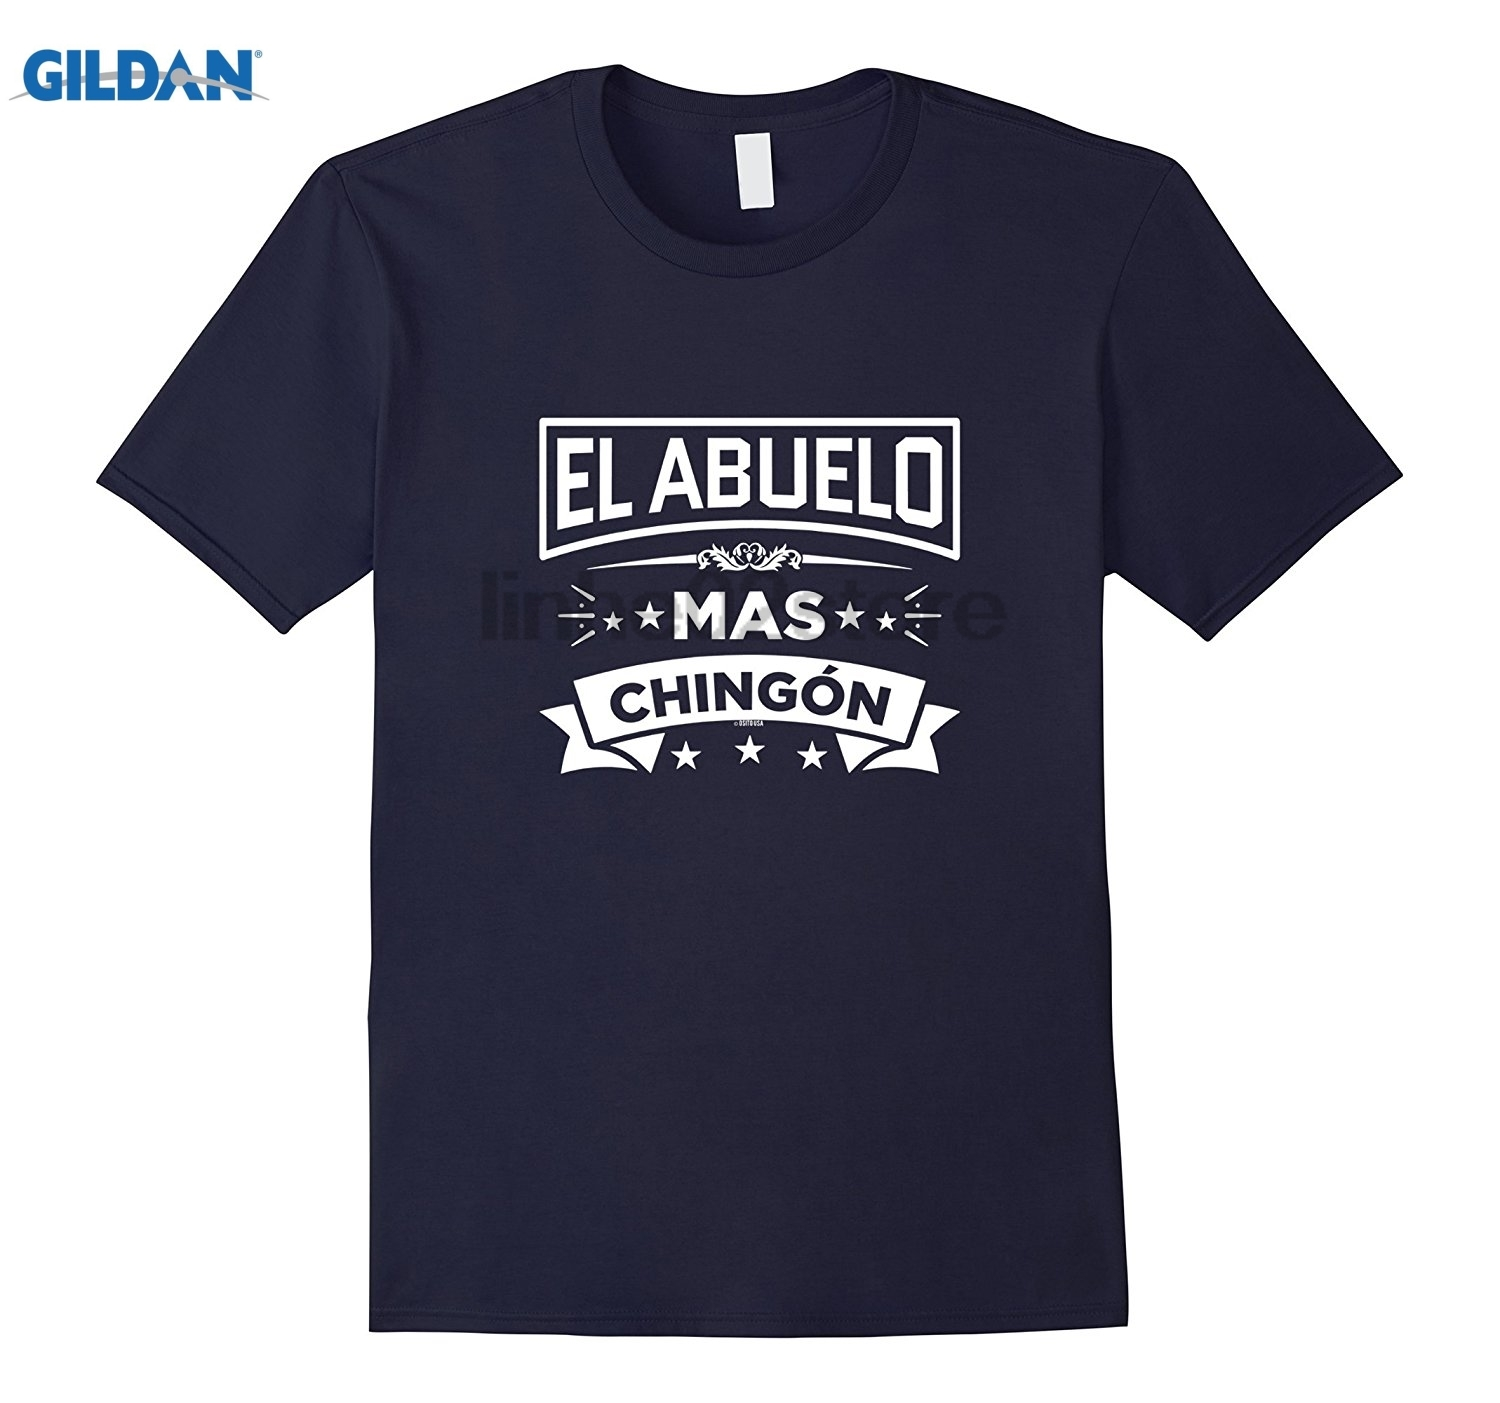 GILDAN El Abuelo Mas Chingon Funny Spanish T Shirt Tee II Dress female T-shirt